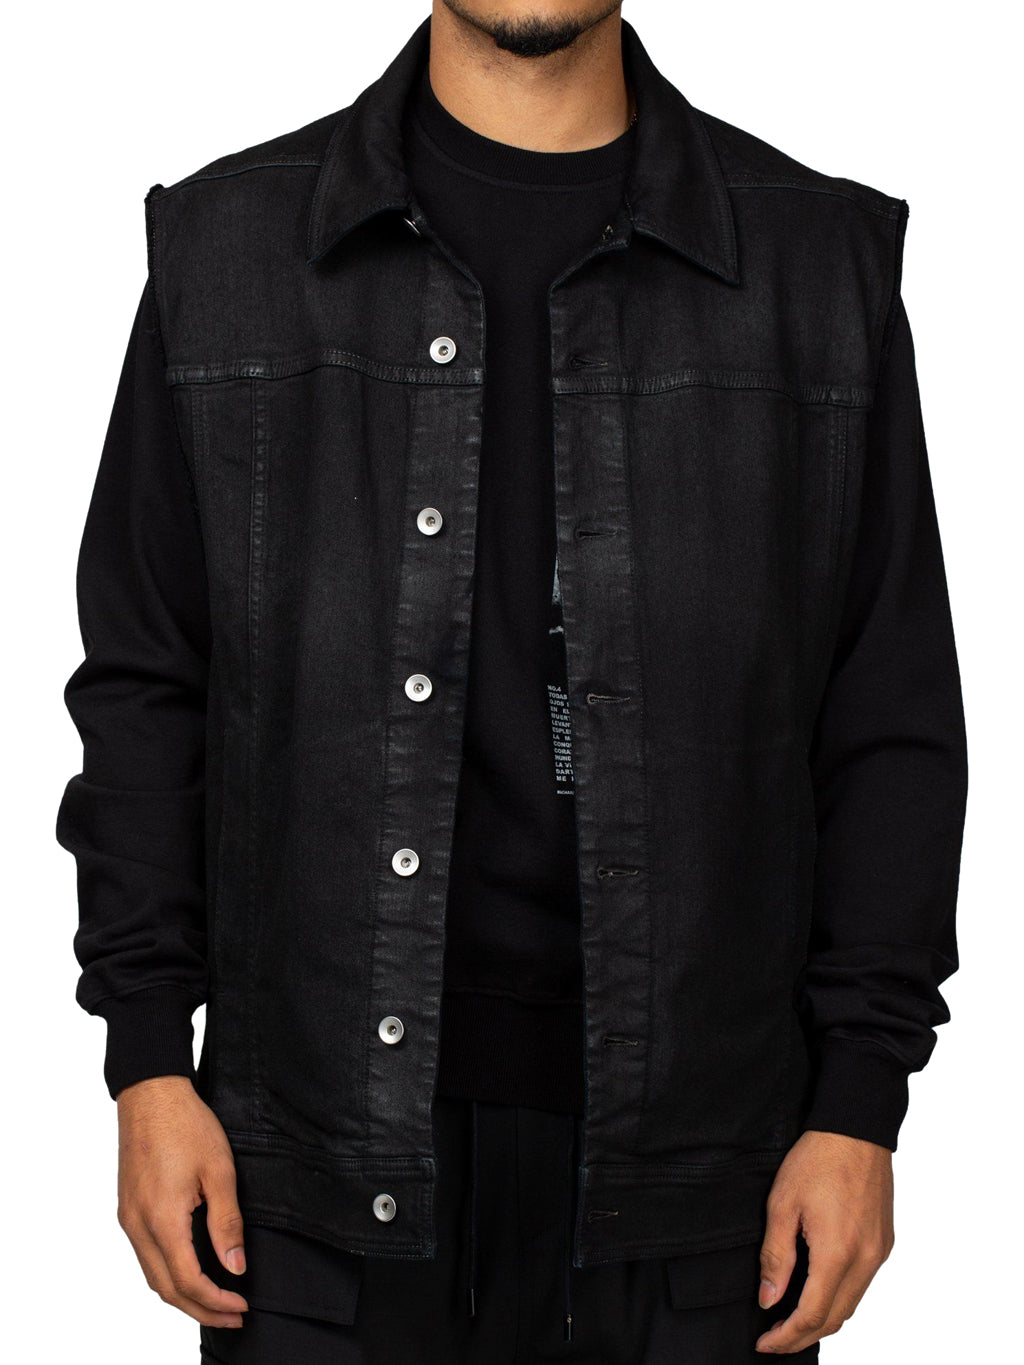 Black Sleeveless Oversized Worker Jacket